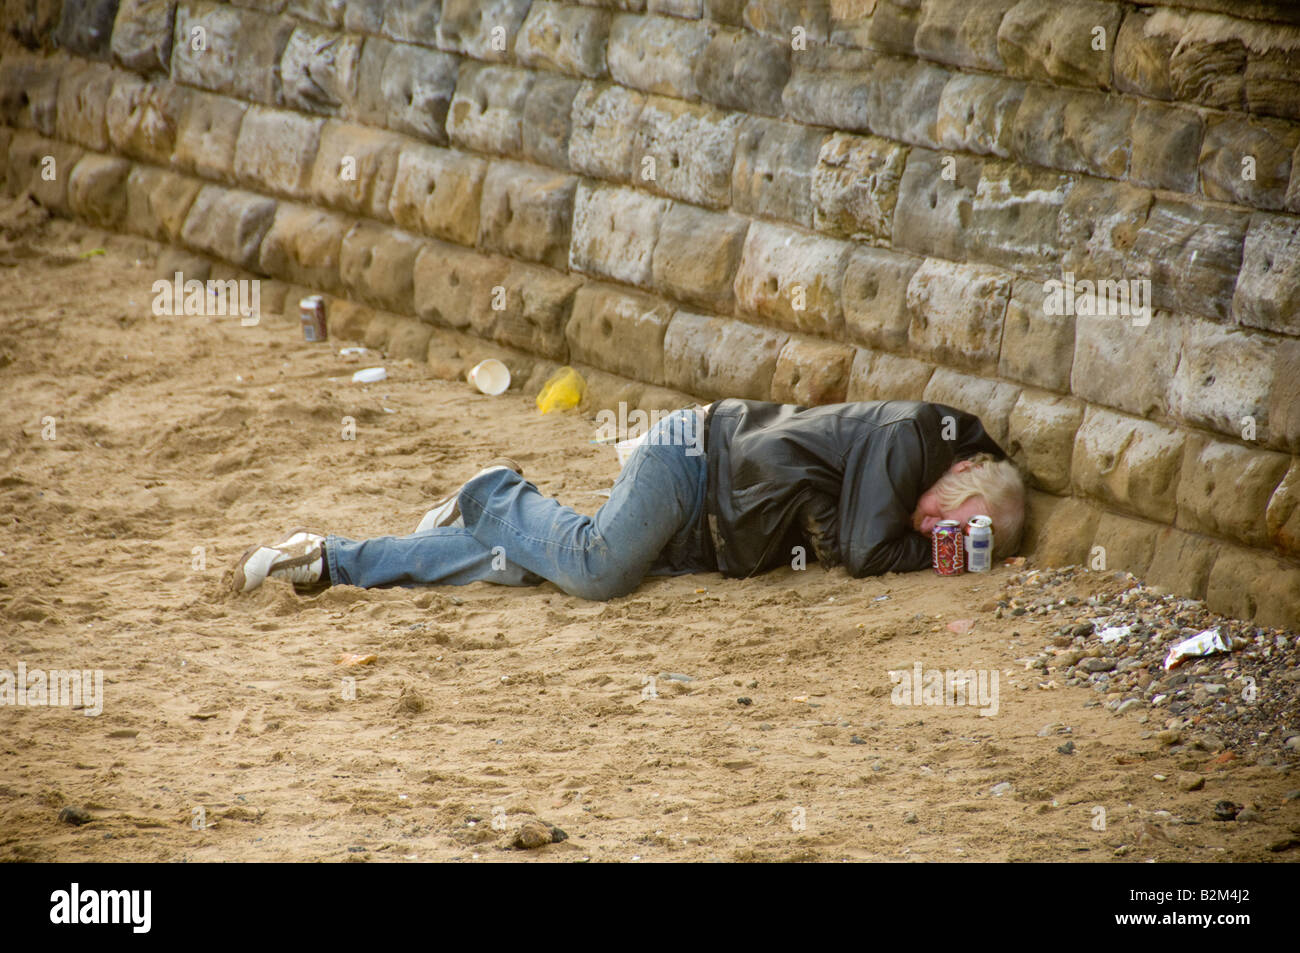 Homeless drunk man sleeping it off on the beachStock Photo